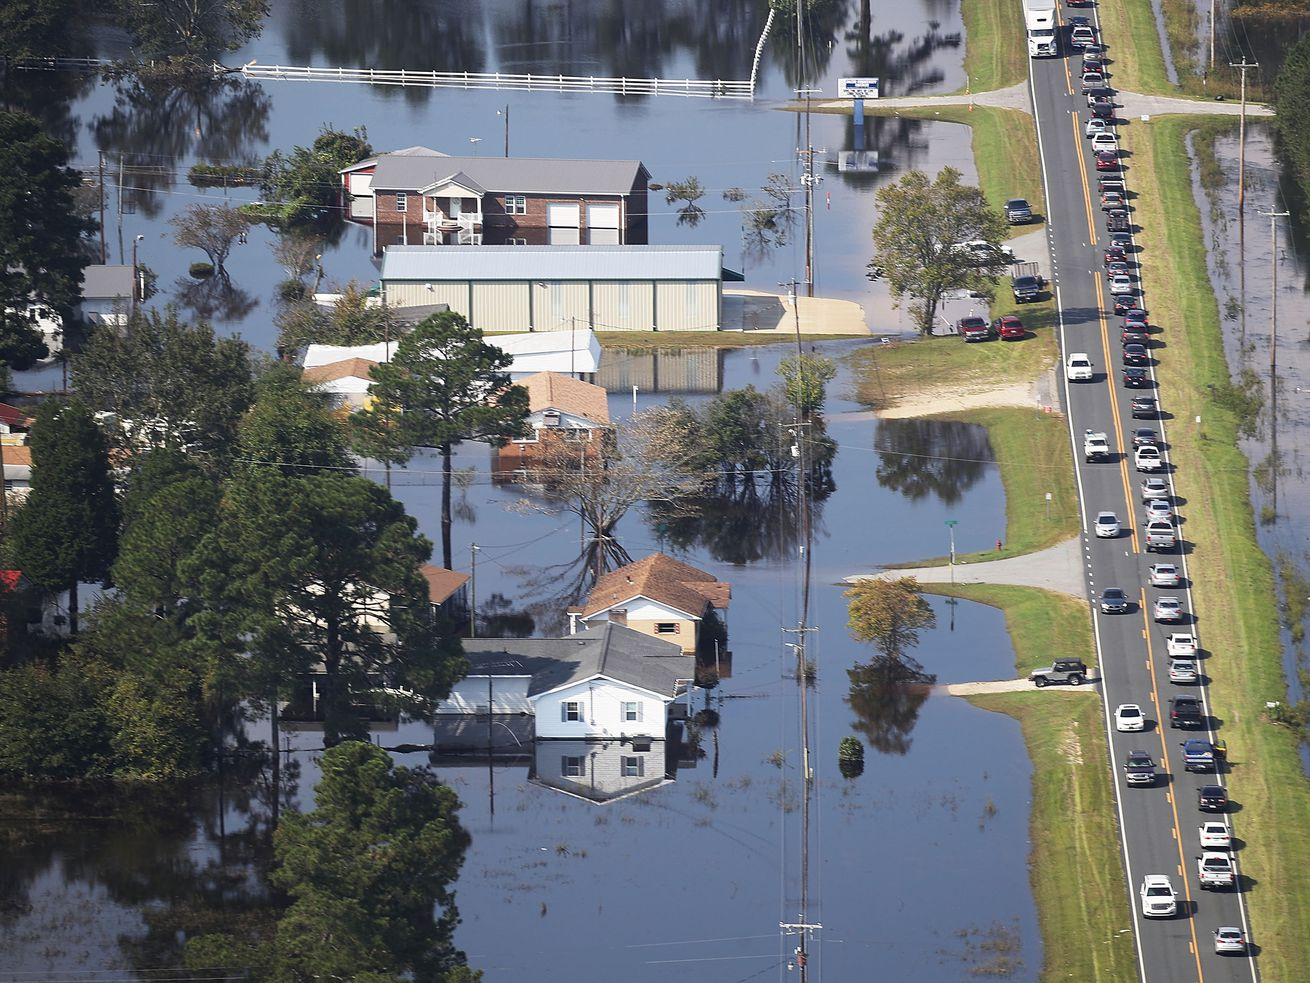 Floodwaters are seen surrounding homes after heavy rains from Hurricane Florence on September 20, 2018, in Lumberton, North Carolina. The rainfall from Hurricane Florence was a 1,000-year event.